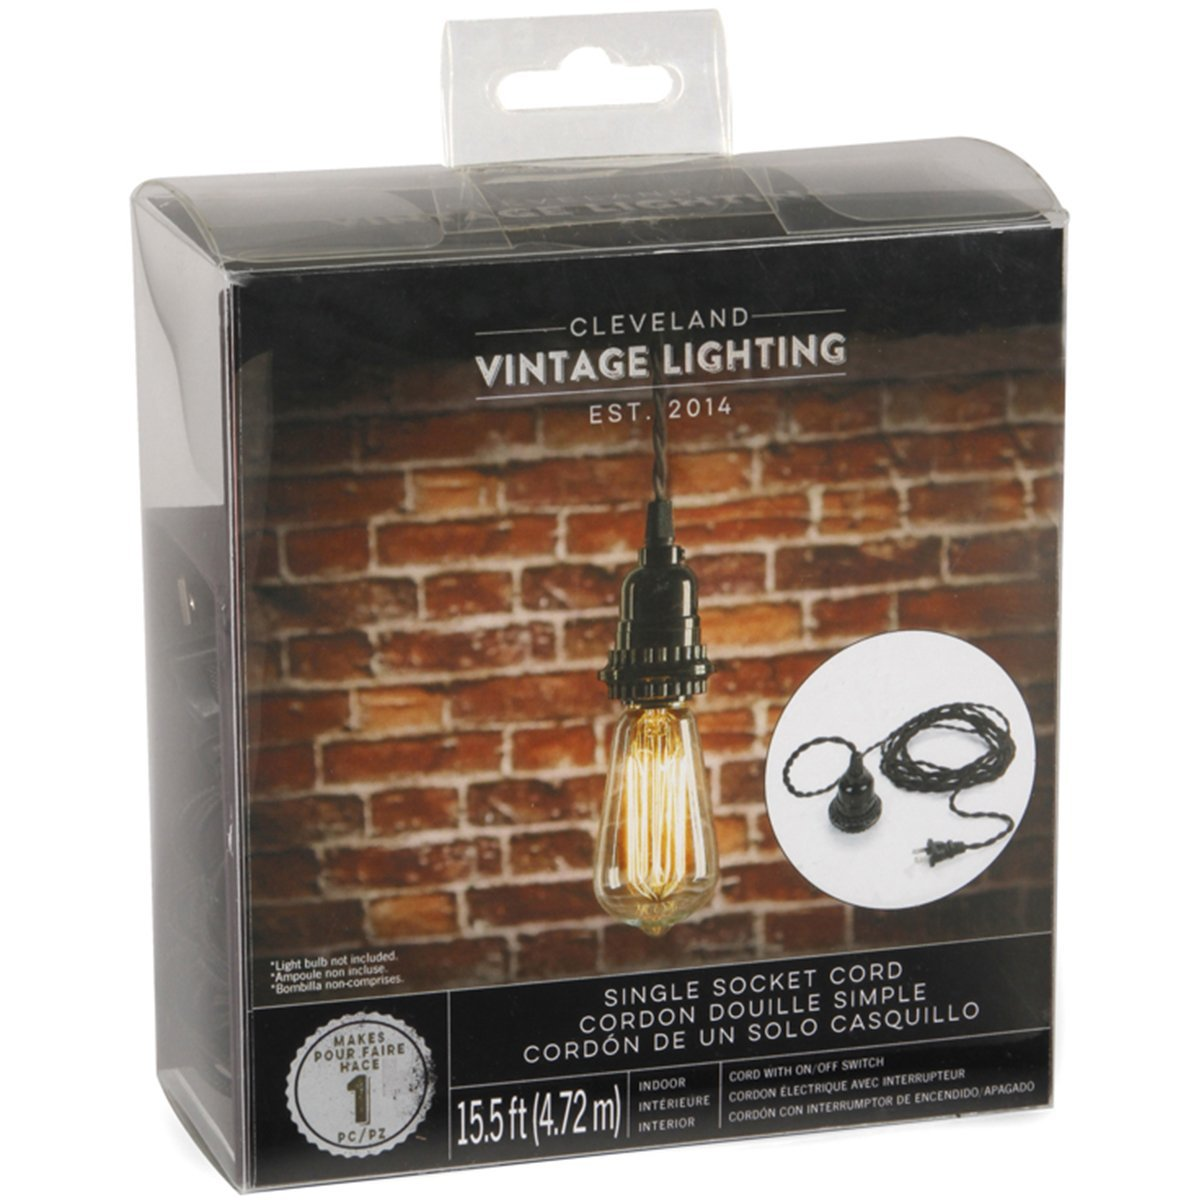 Amazon.com: Cleveland Vintage Lighting CLV121 Single Socket Cord, Black, 15.5 feet: Home & Kitchen